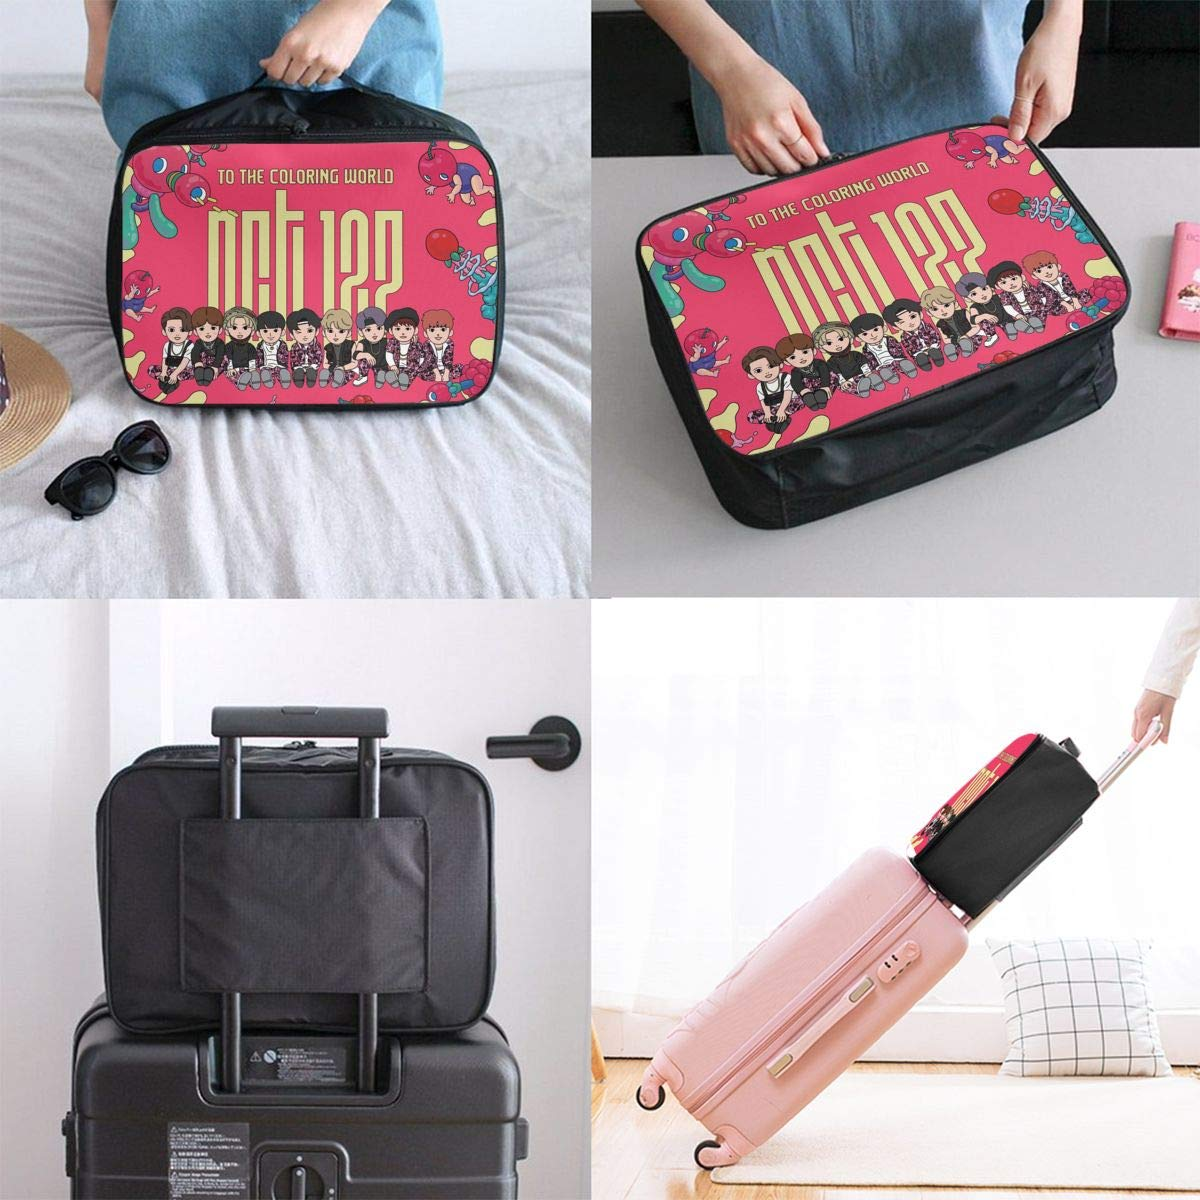 Chengquw NCT 127 Kpop Travel Duffel Bag Fashion Lightweight Large Capacity Portable Luggage Bag